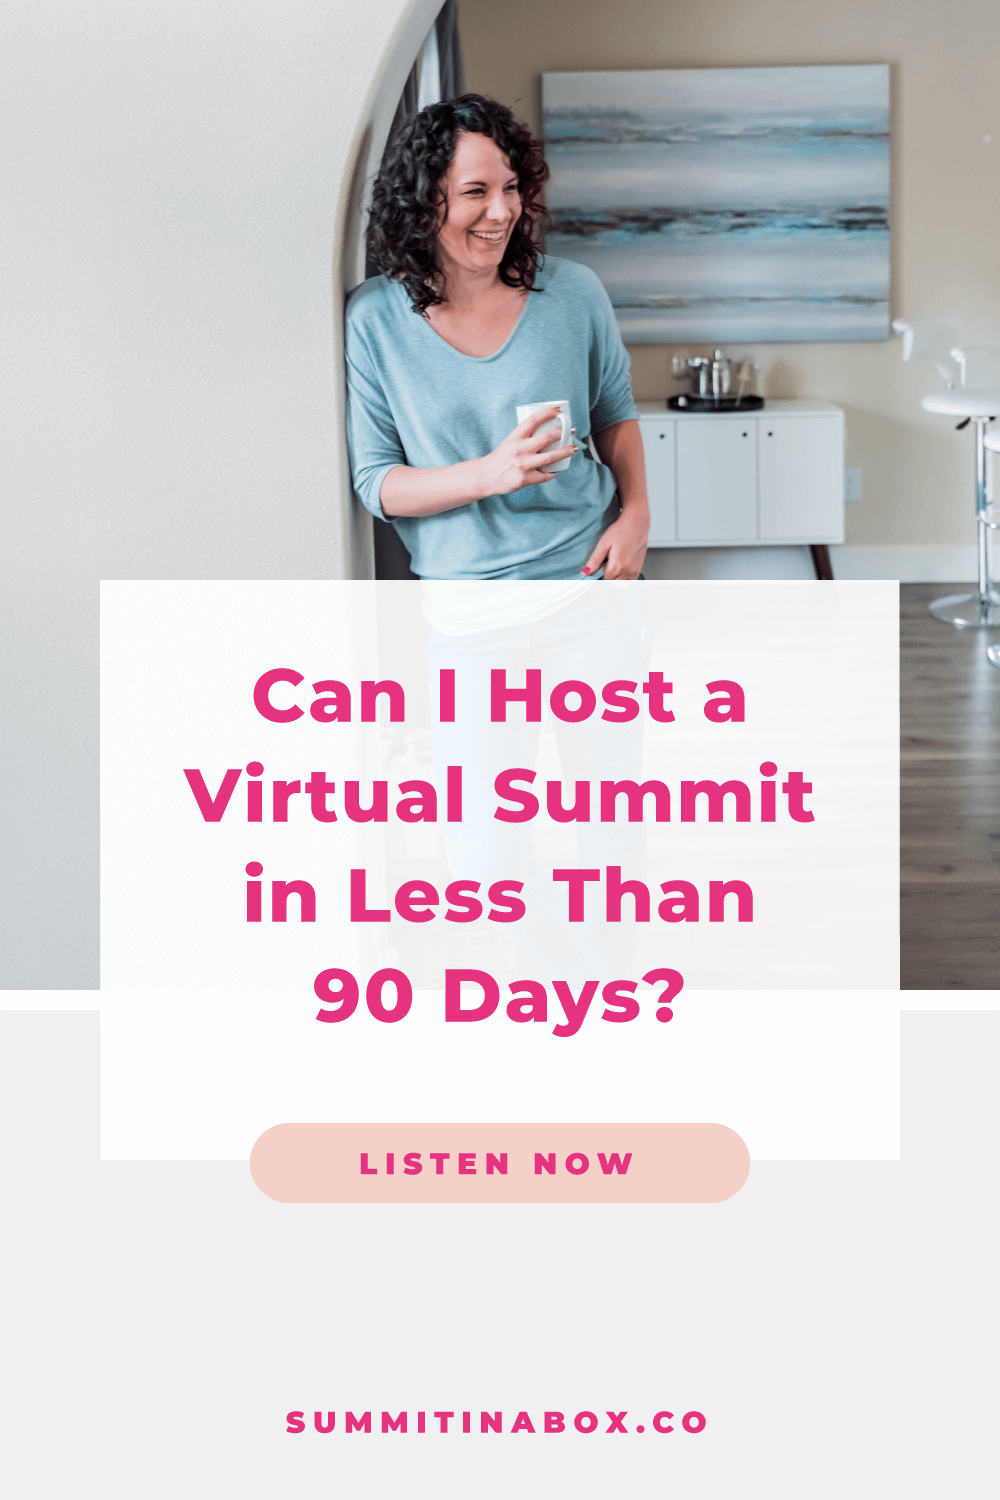 Can I host a virtual summit in less than 90 days? Let's cover why a 90-day timeline is recommended and what you can do if you really need to do it faster.